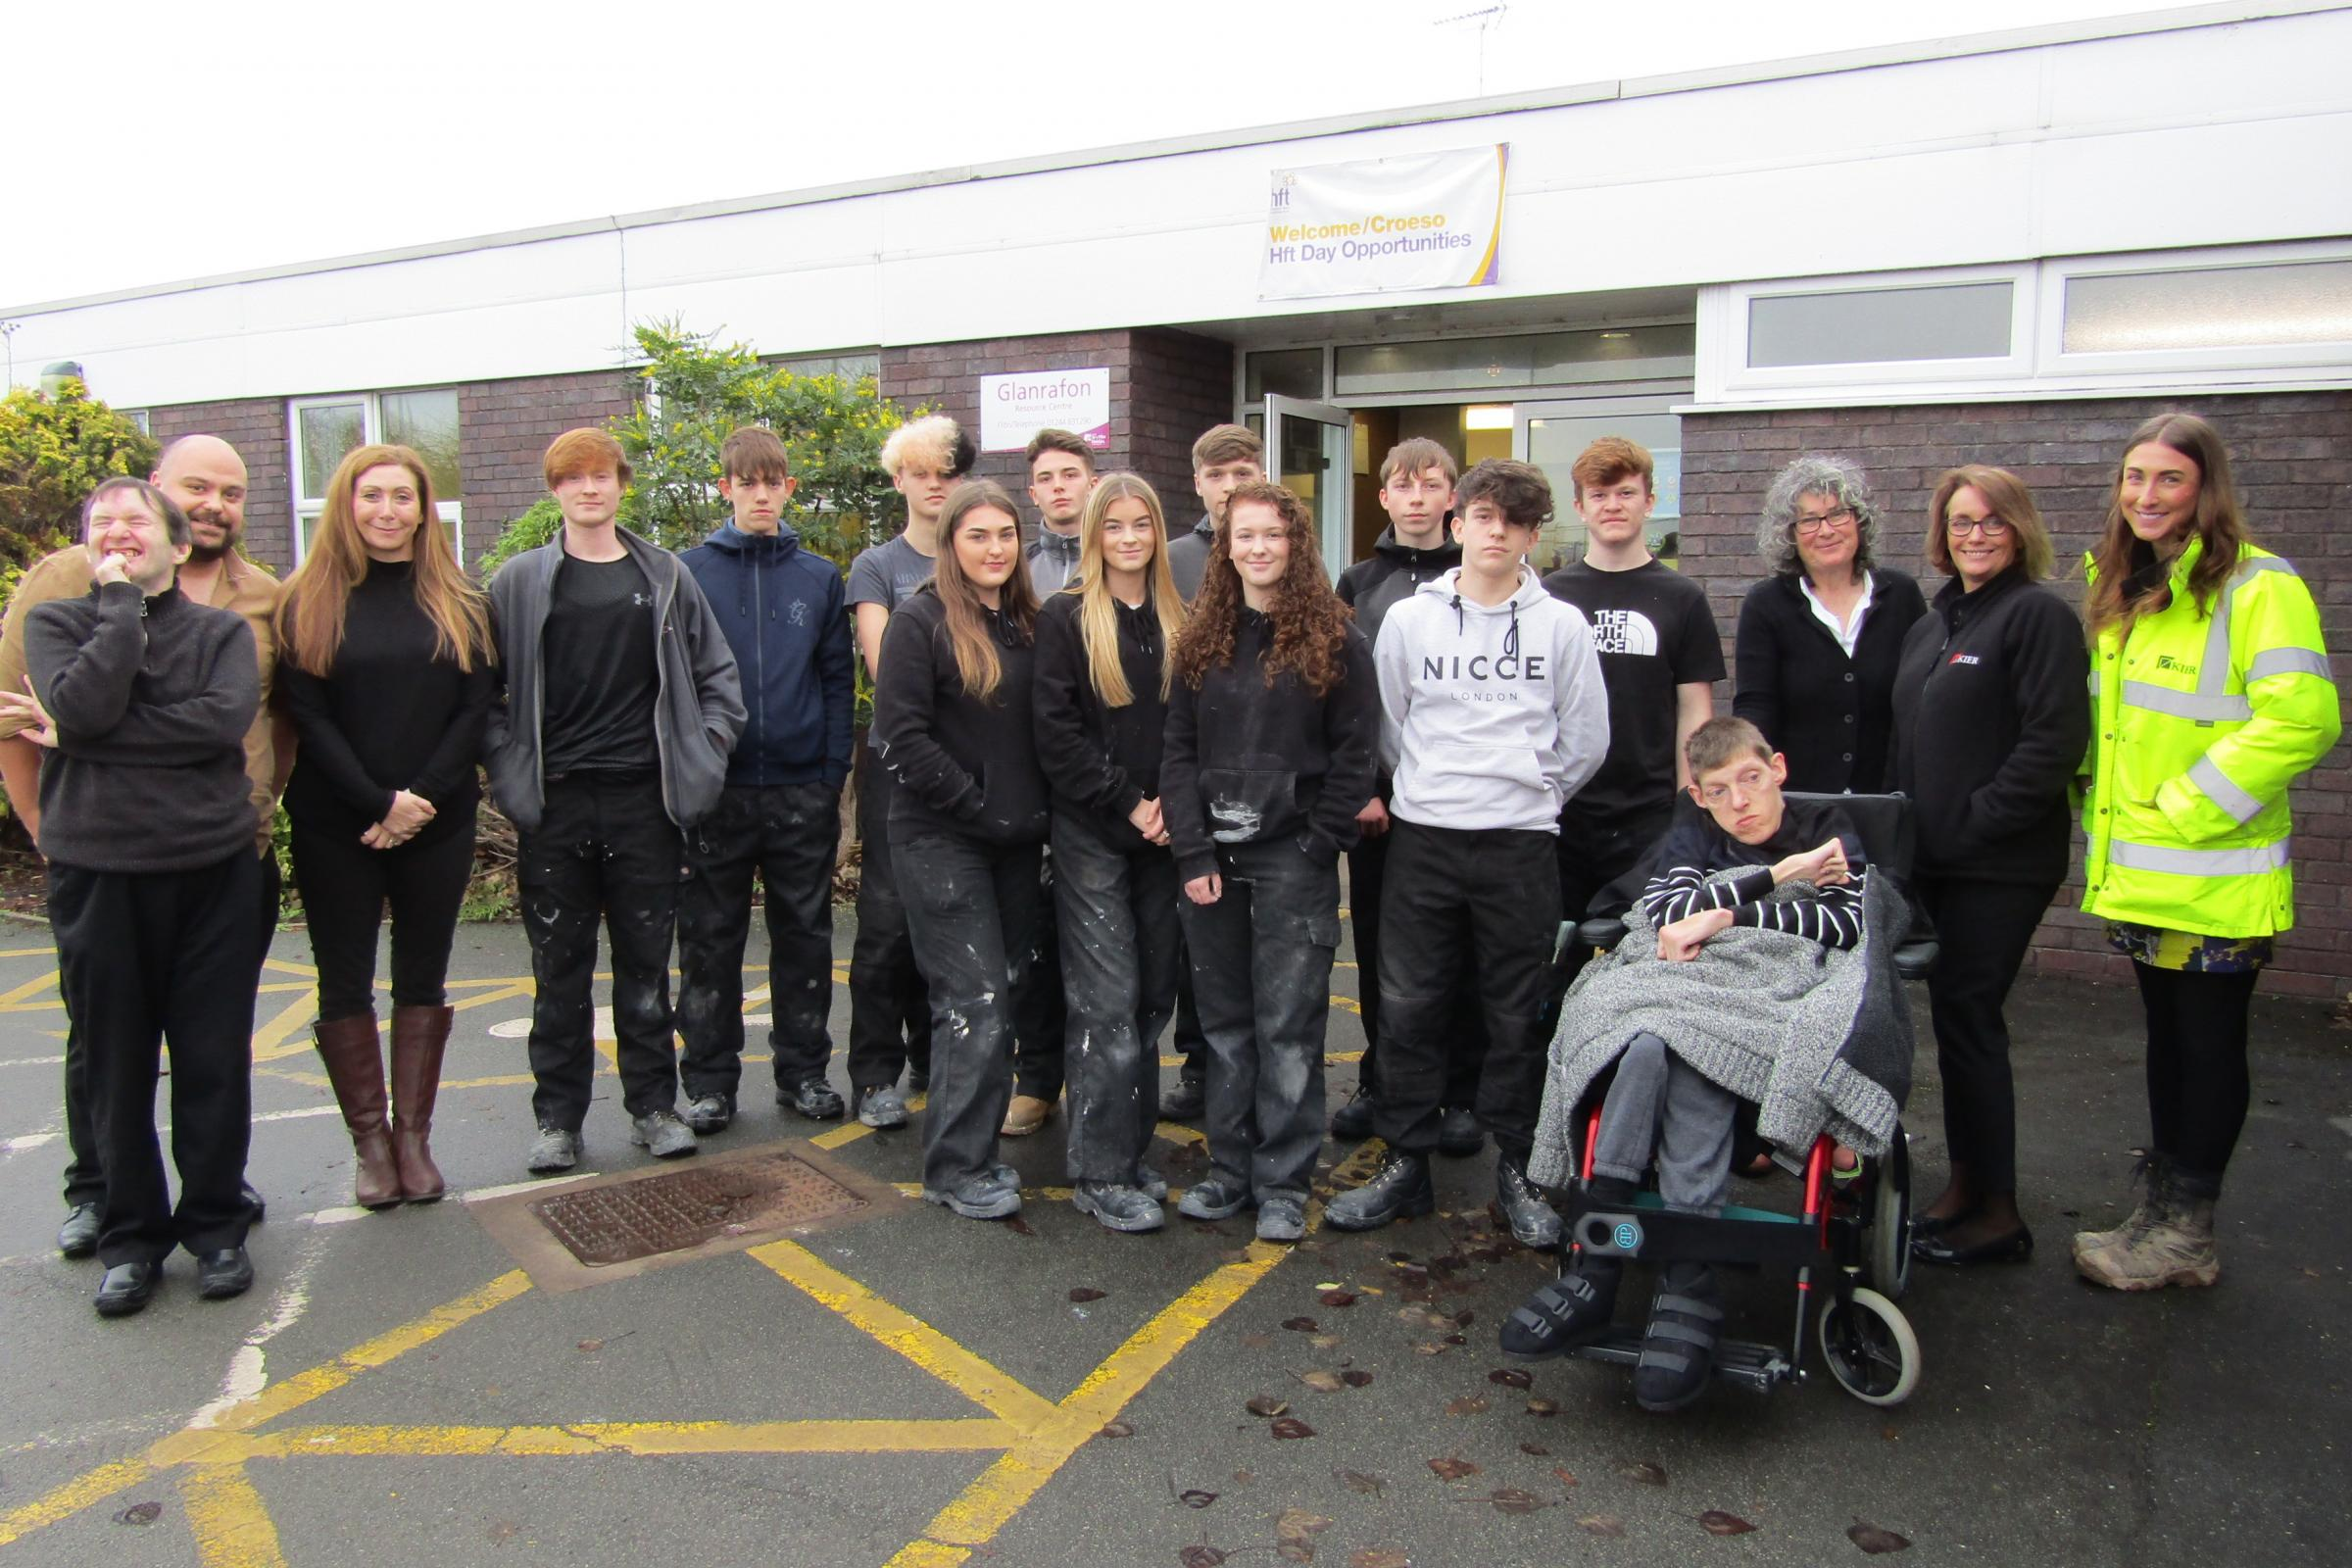 Students spruce up dilapidated Flintshire community centre while £4 million adult  day care facility is being built